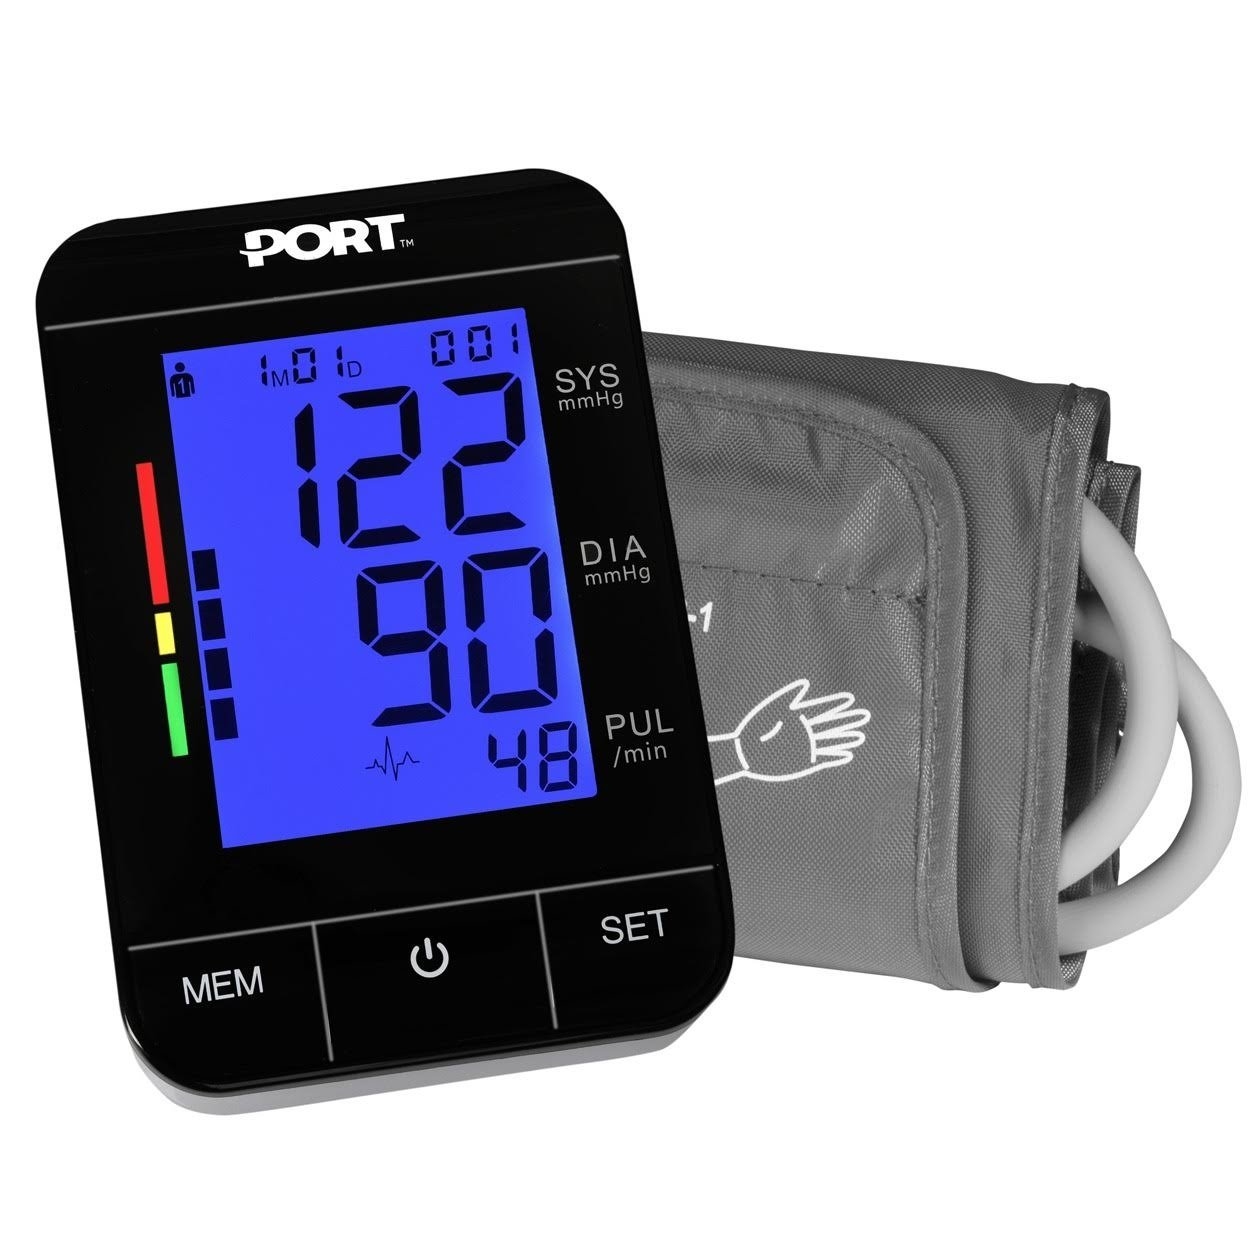 Digital Blood Pressure Monitor By P OR T Backlit LCD Large Display, Adjustable Cuff, Automatic And Easy To Use, Battery Operated And Portabl e, Memory Function For 2 Users, With Heartbeat Monitor